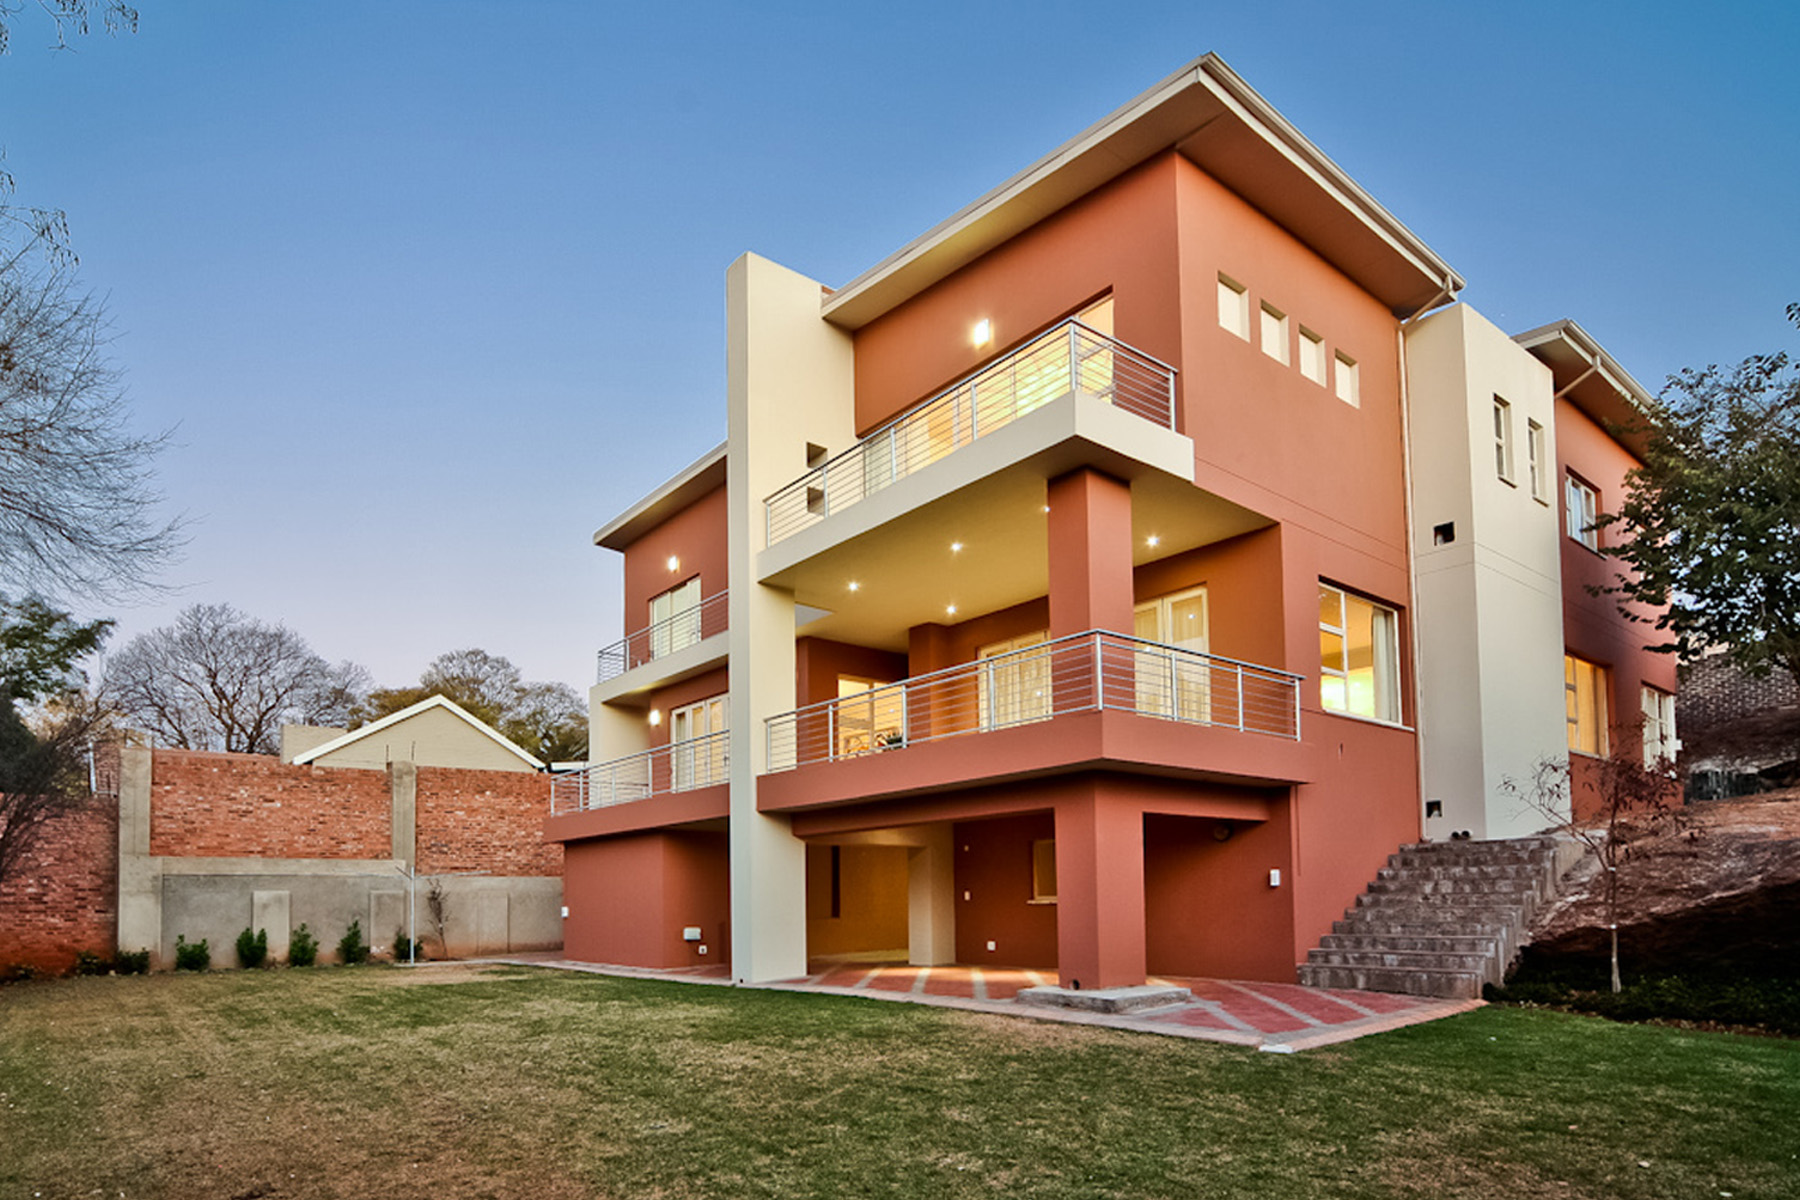 Single Family Home for Sale at Bowling Road Johannesburg, Gauteng, 2007 South Africa